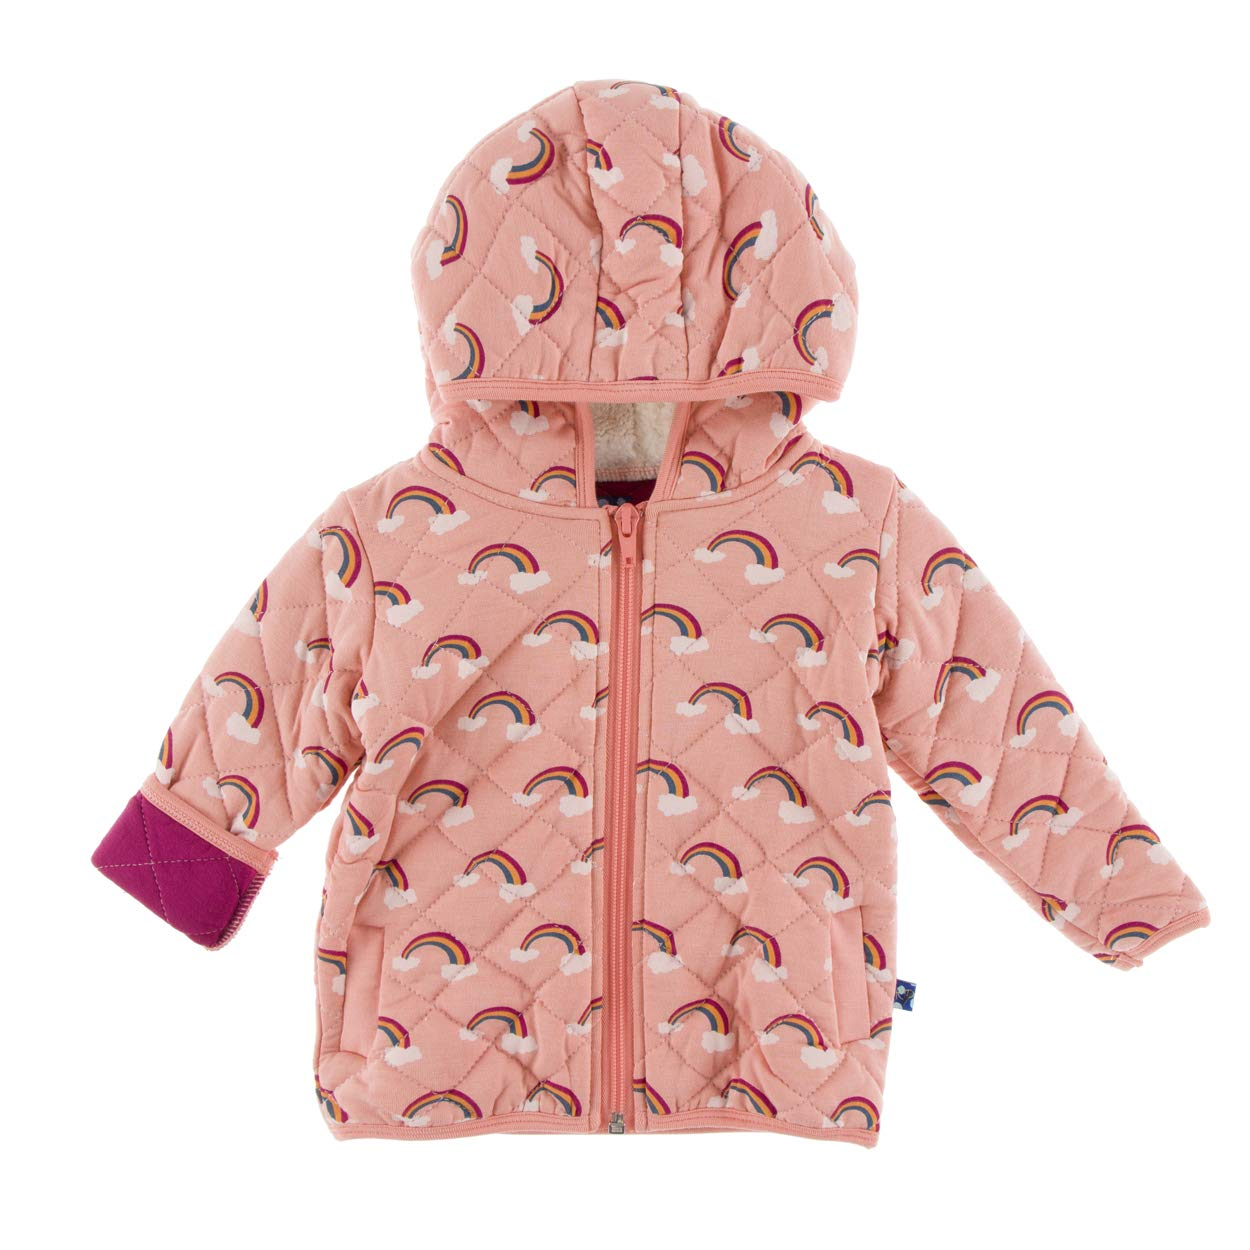 Kickee Pants Little Girls Print Quilted Jacket with Sherpa-Lined Hood - Blush Rainbow/Berry, 6-12 Months by Kickee Pants